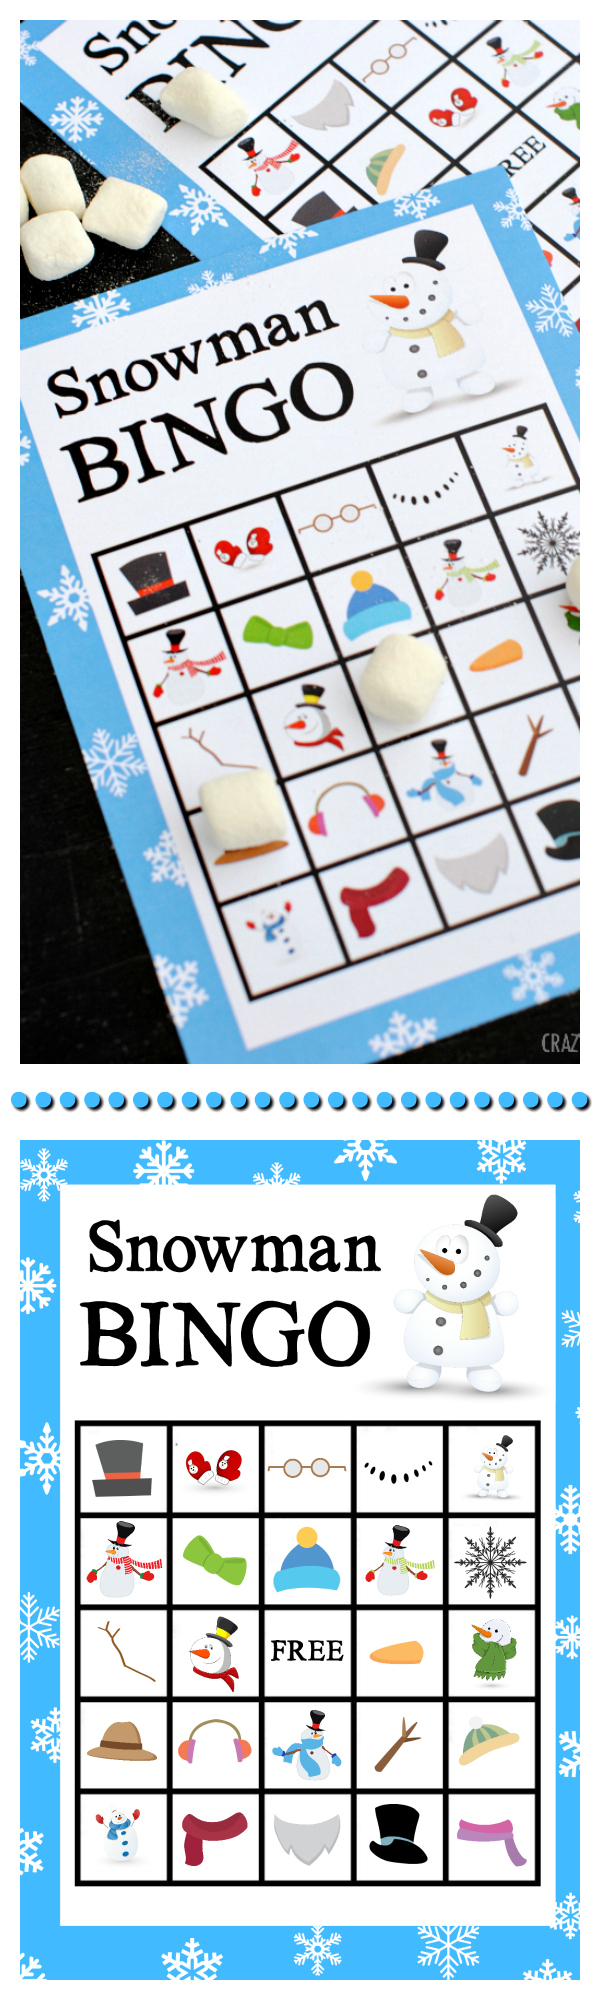 Printable Snowman Bingo Game - Crazy Little Projects